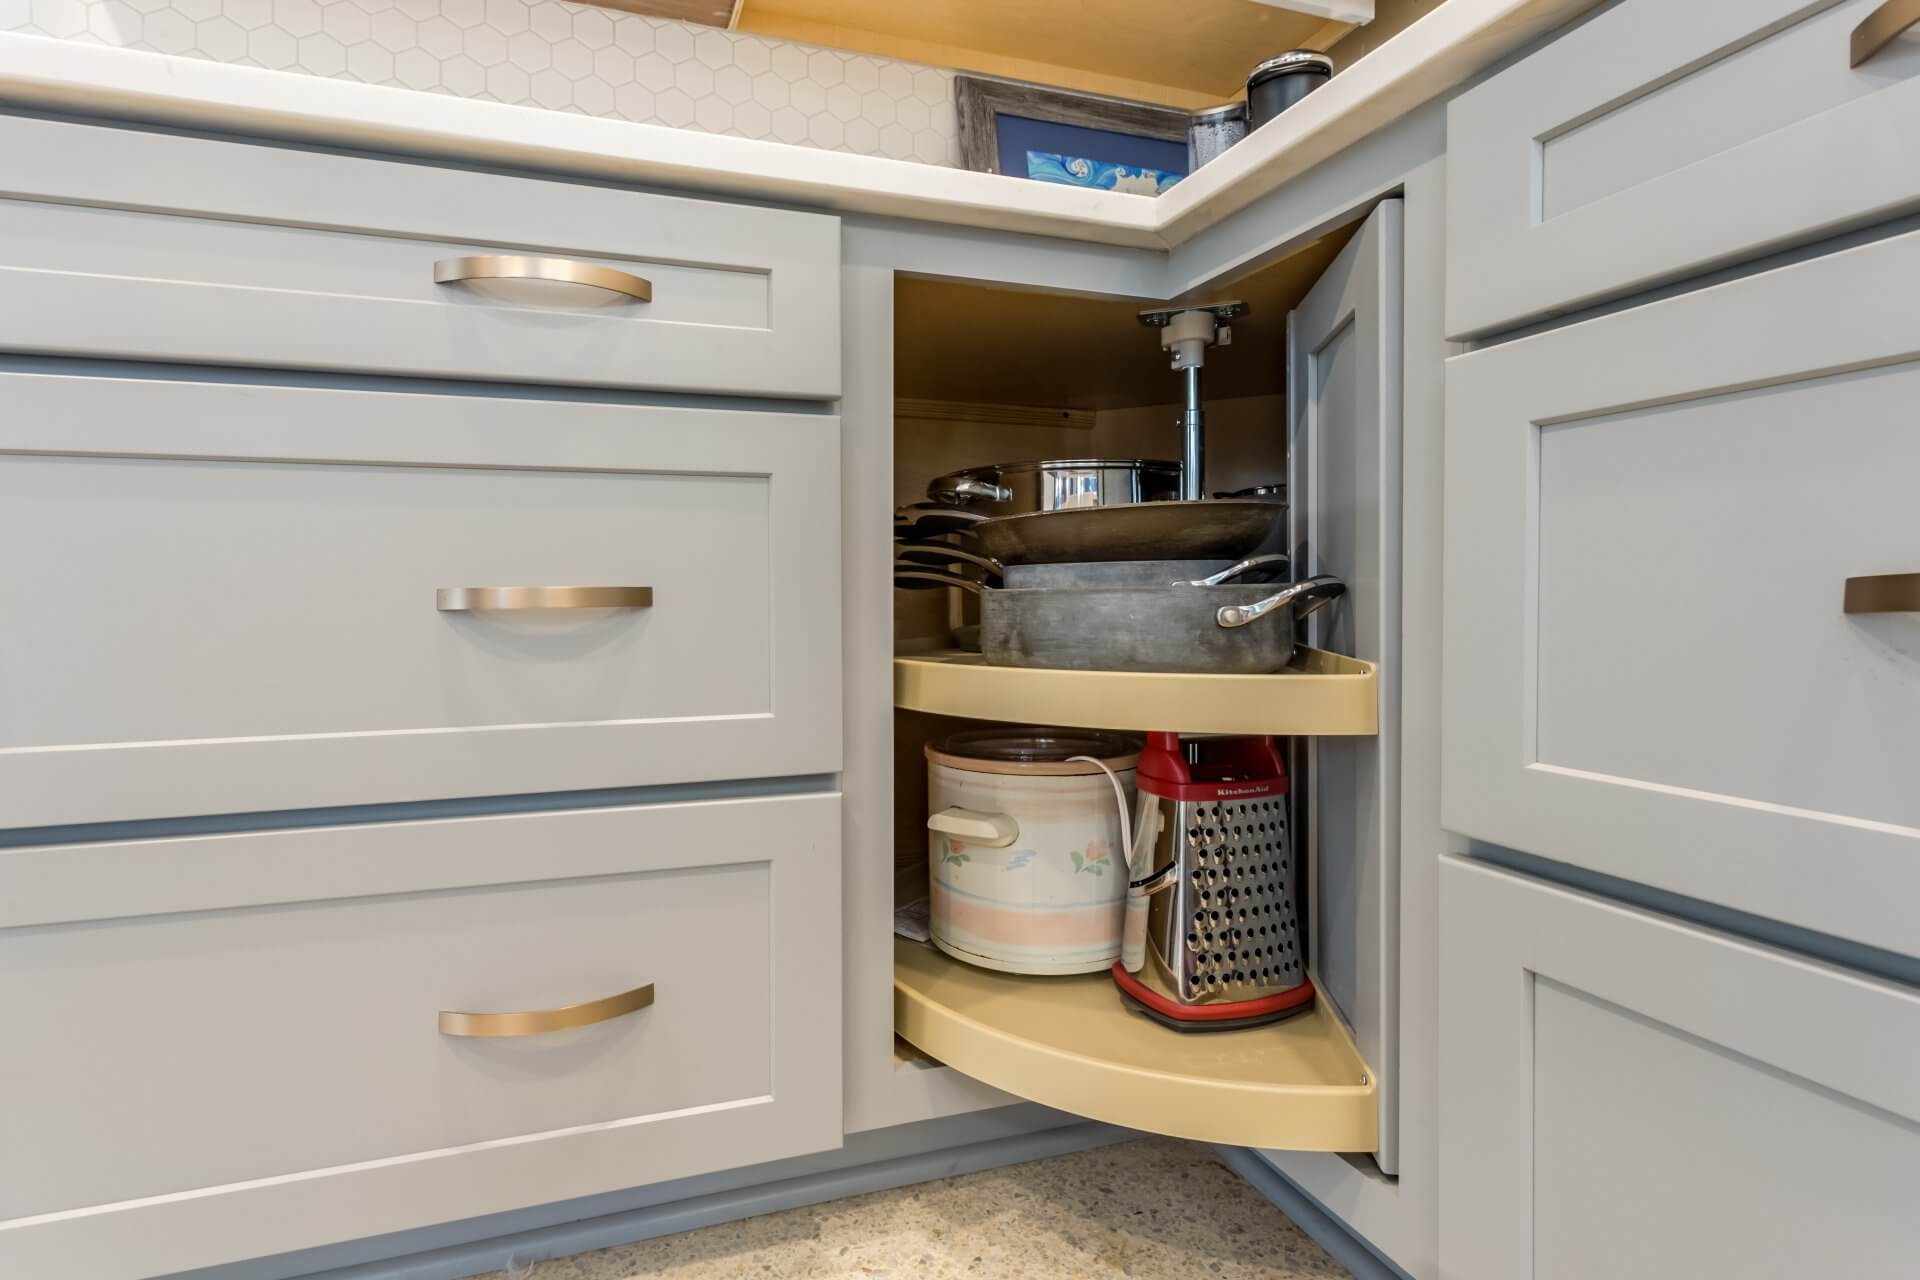 After: Mid-century modern kitchen remodel with rotating lazy susan corner cabinet